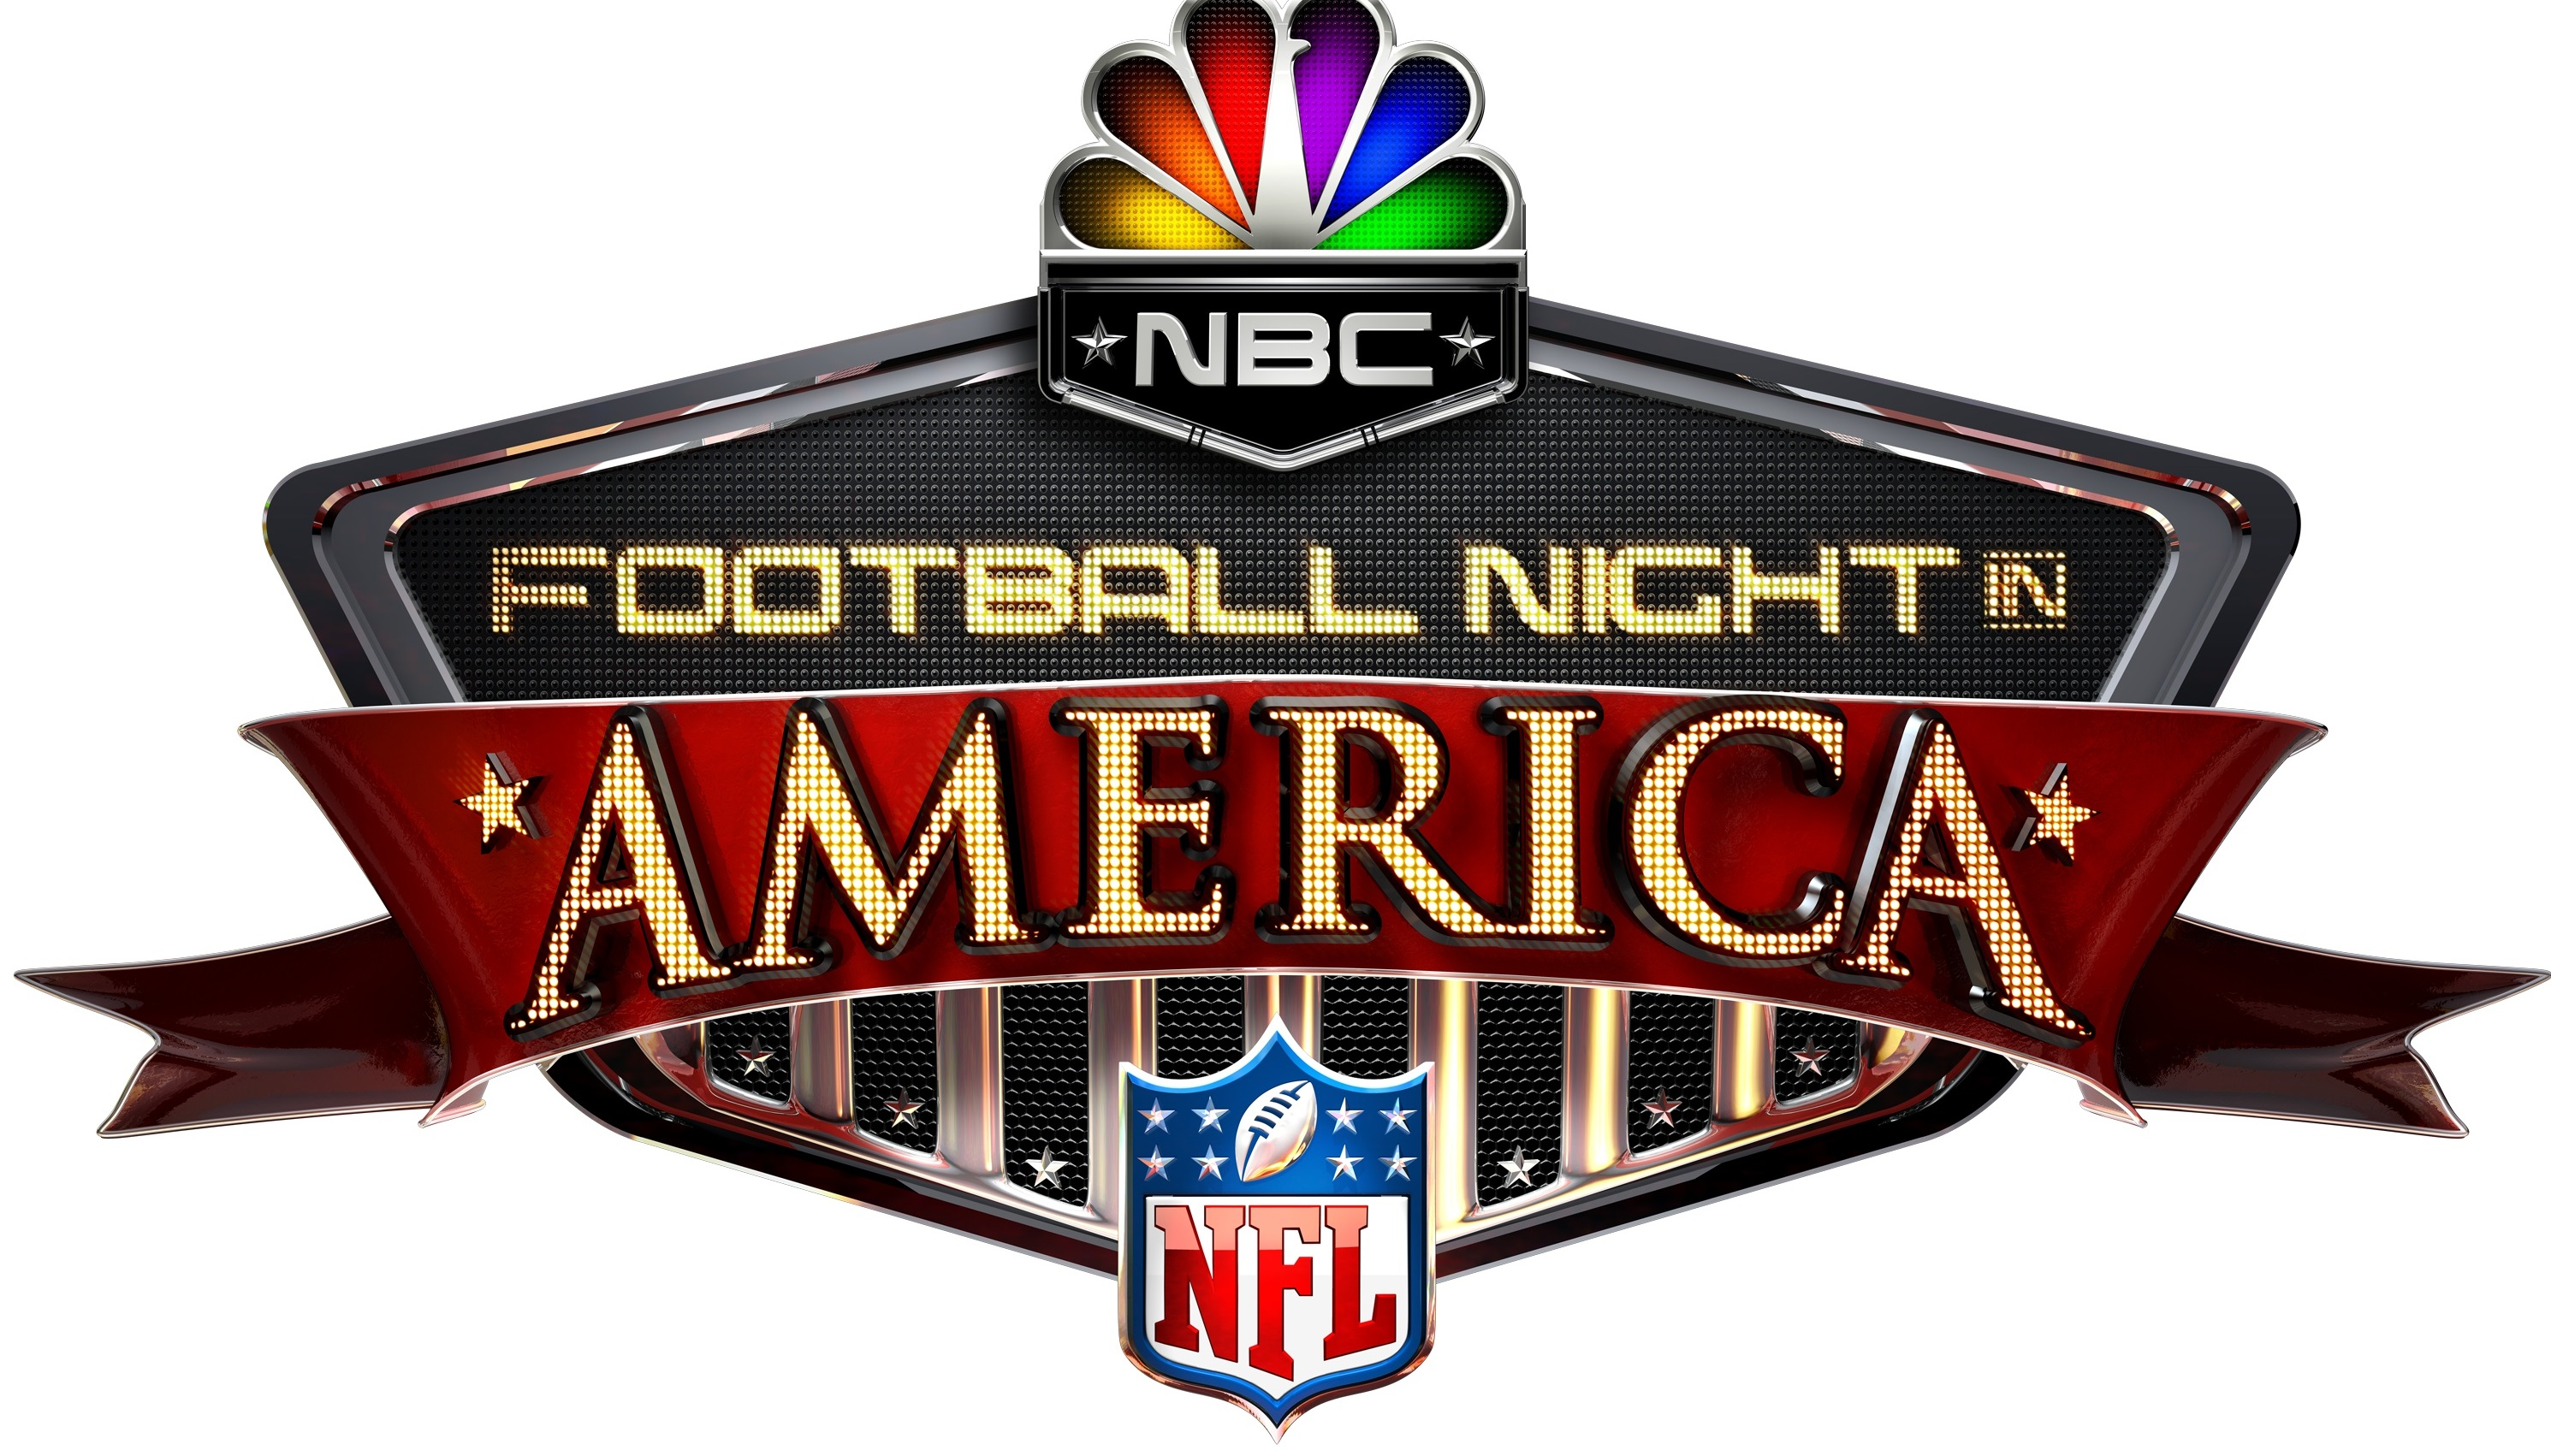 After five weeks of reviewing Sunday morning NFL pregame shows, we now ...